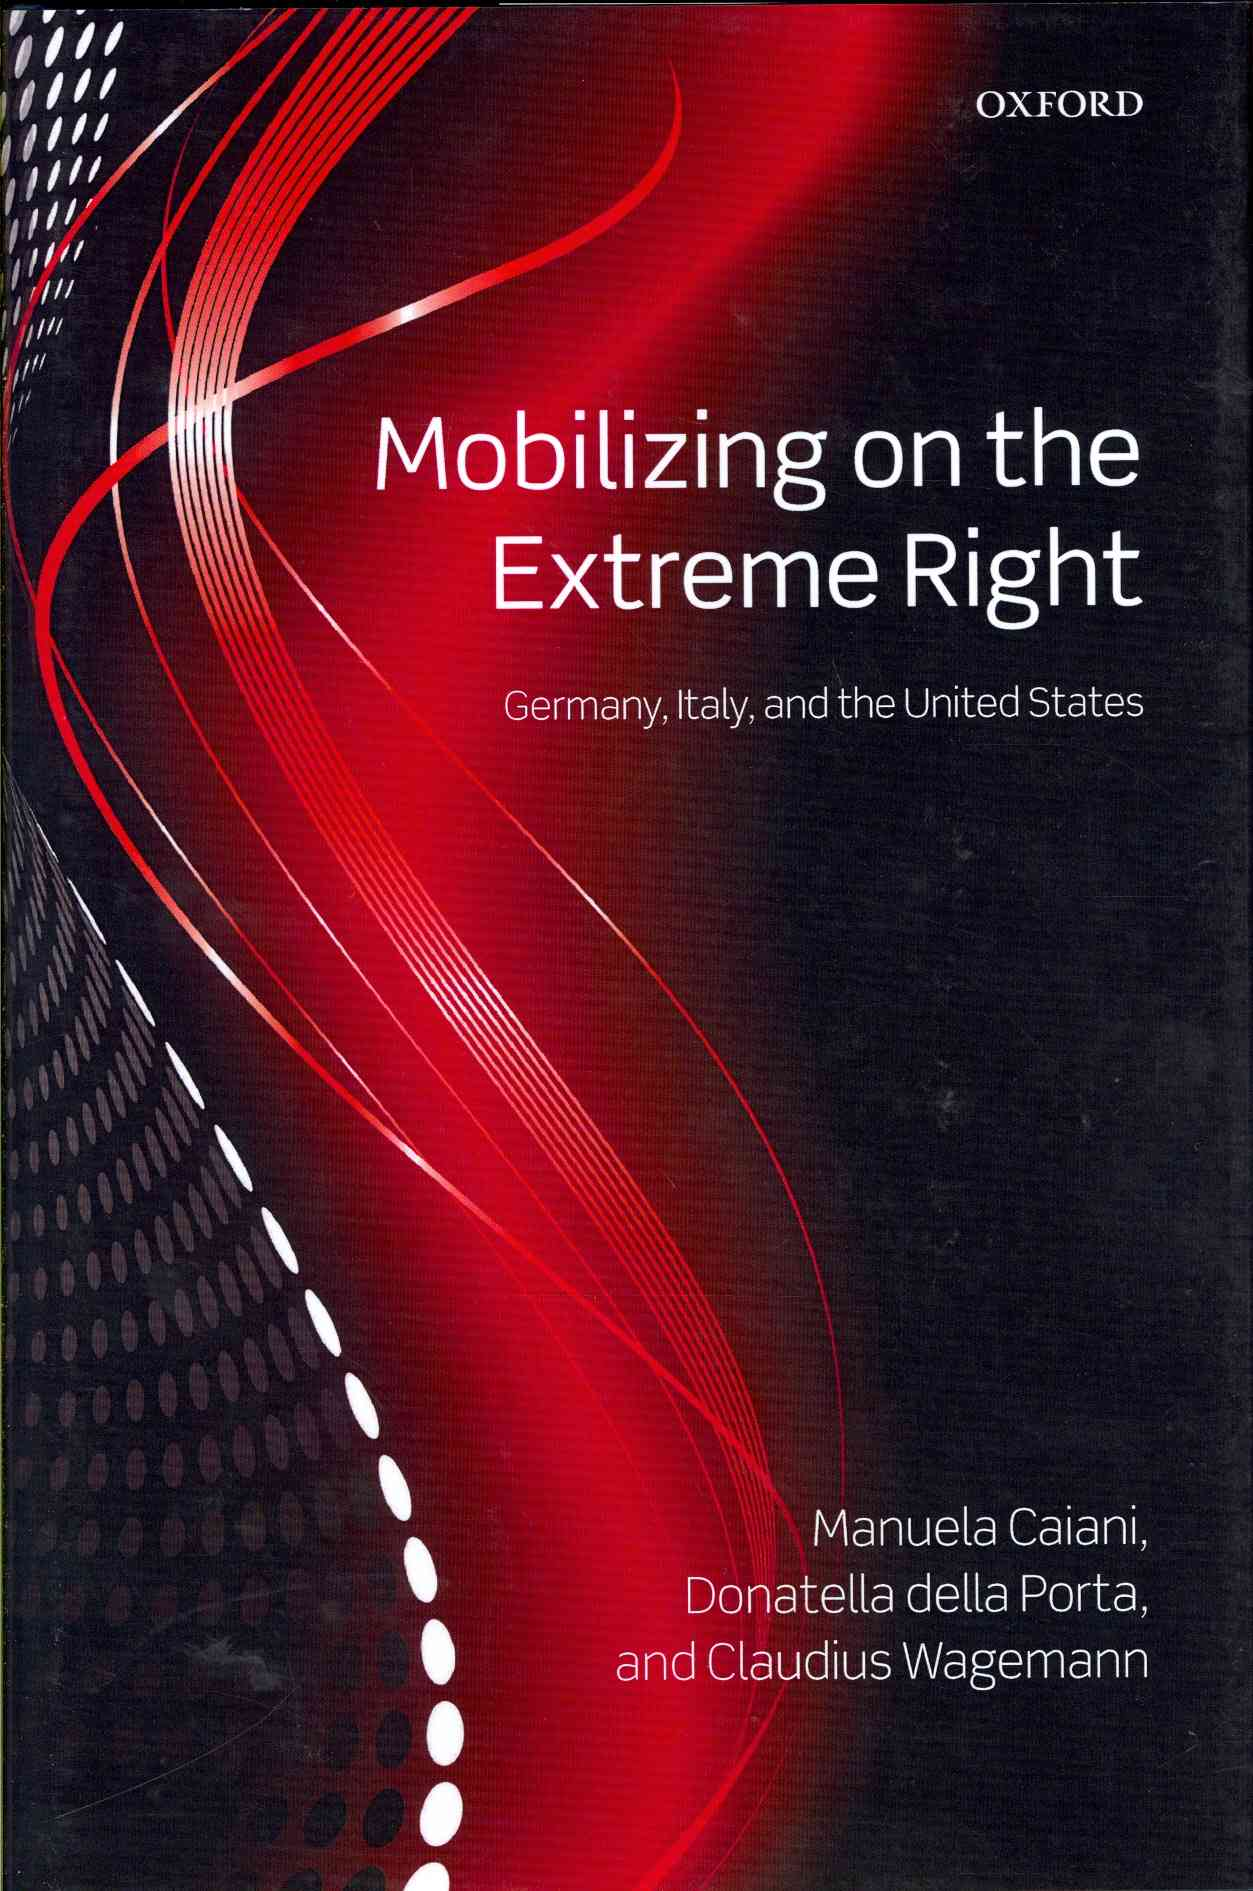 Mobilizing on the Extreme Right: Germany, Italy, and the United States (Hardcover) - Thumbnail 0